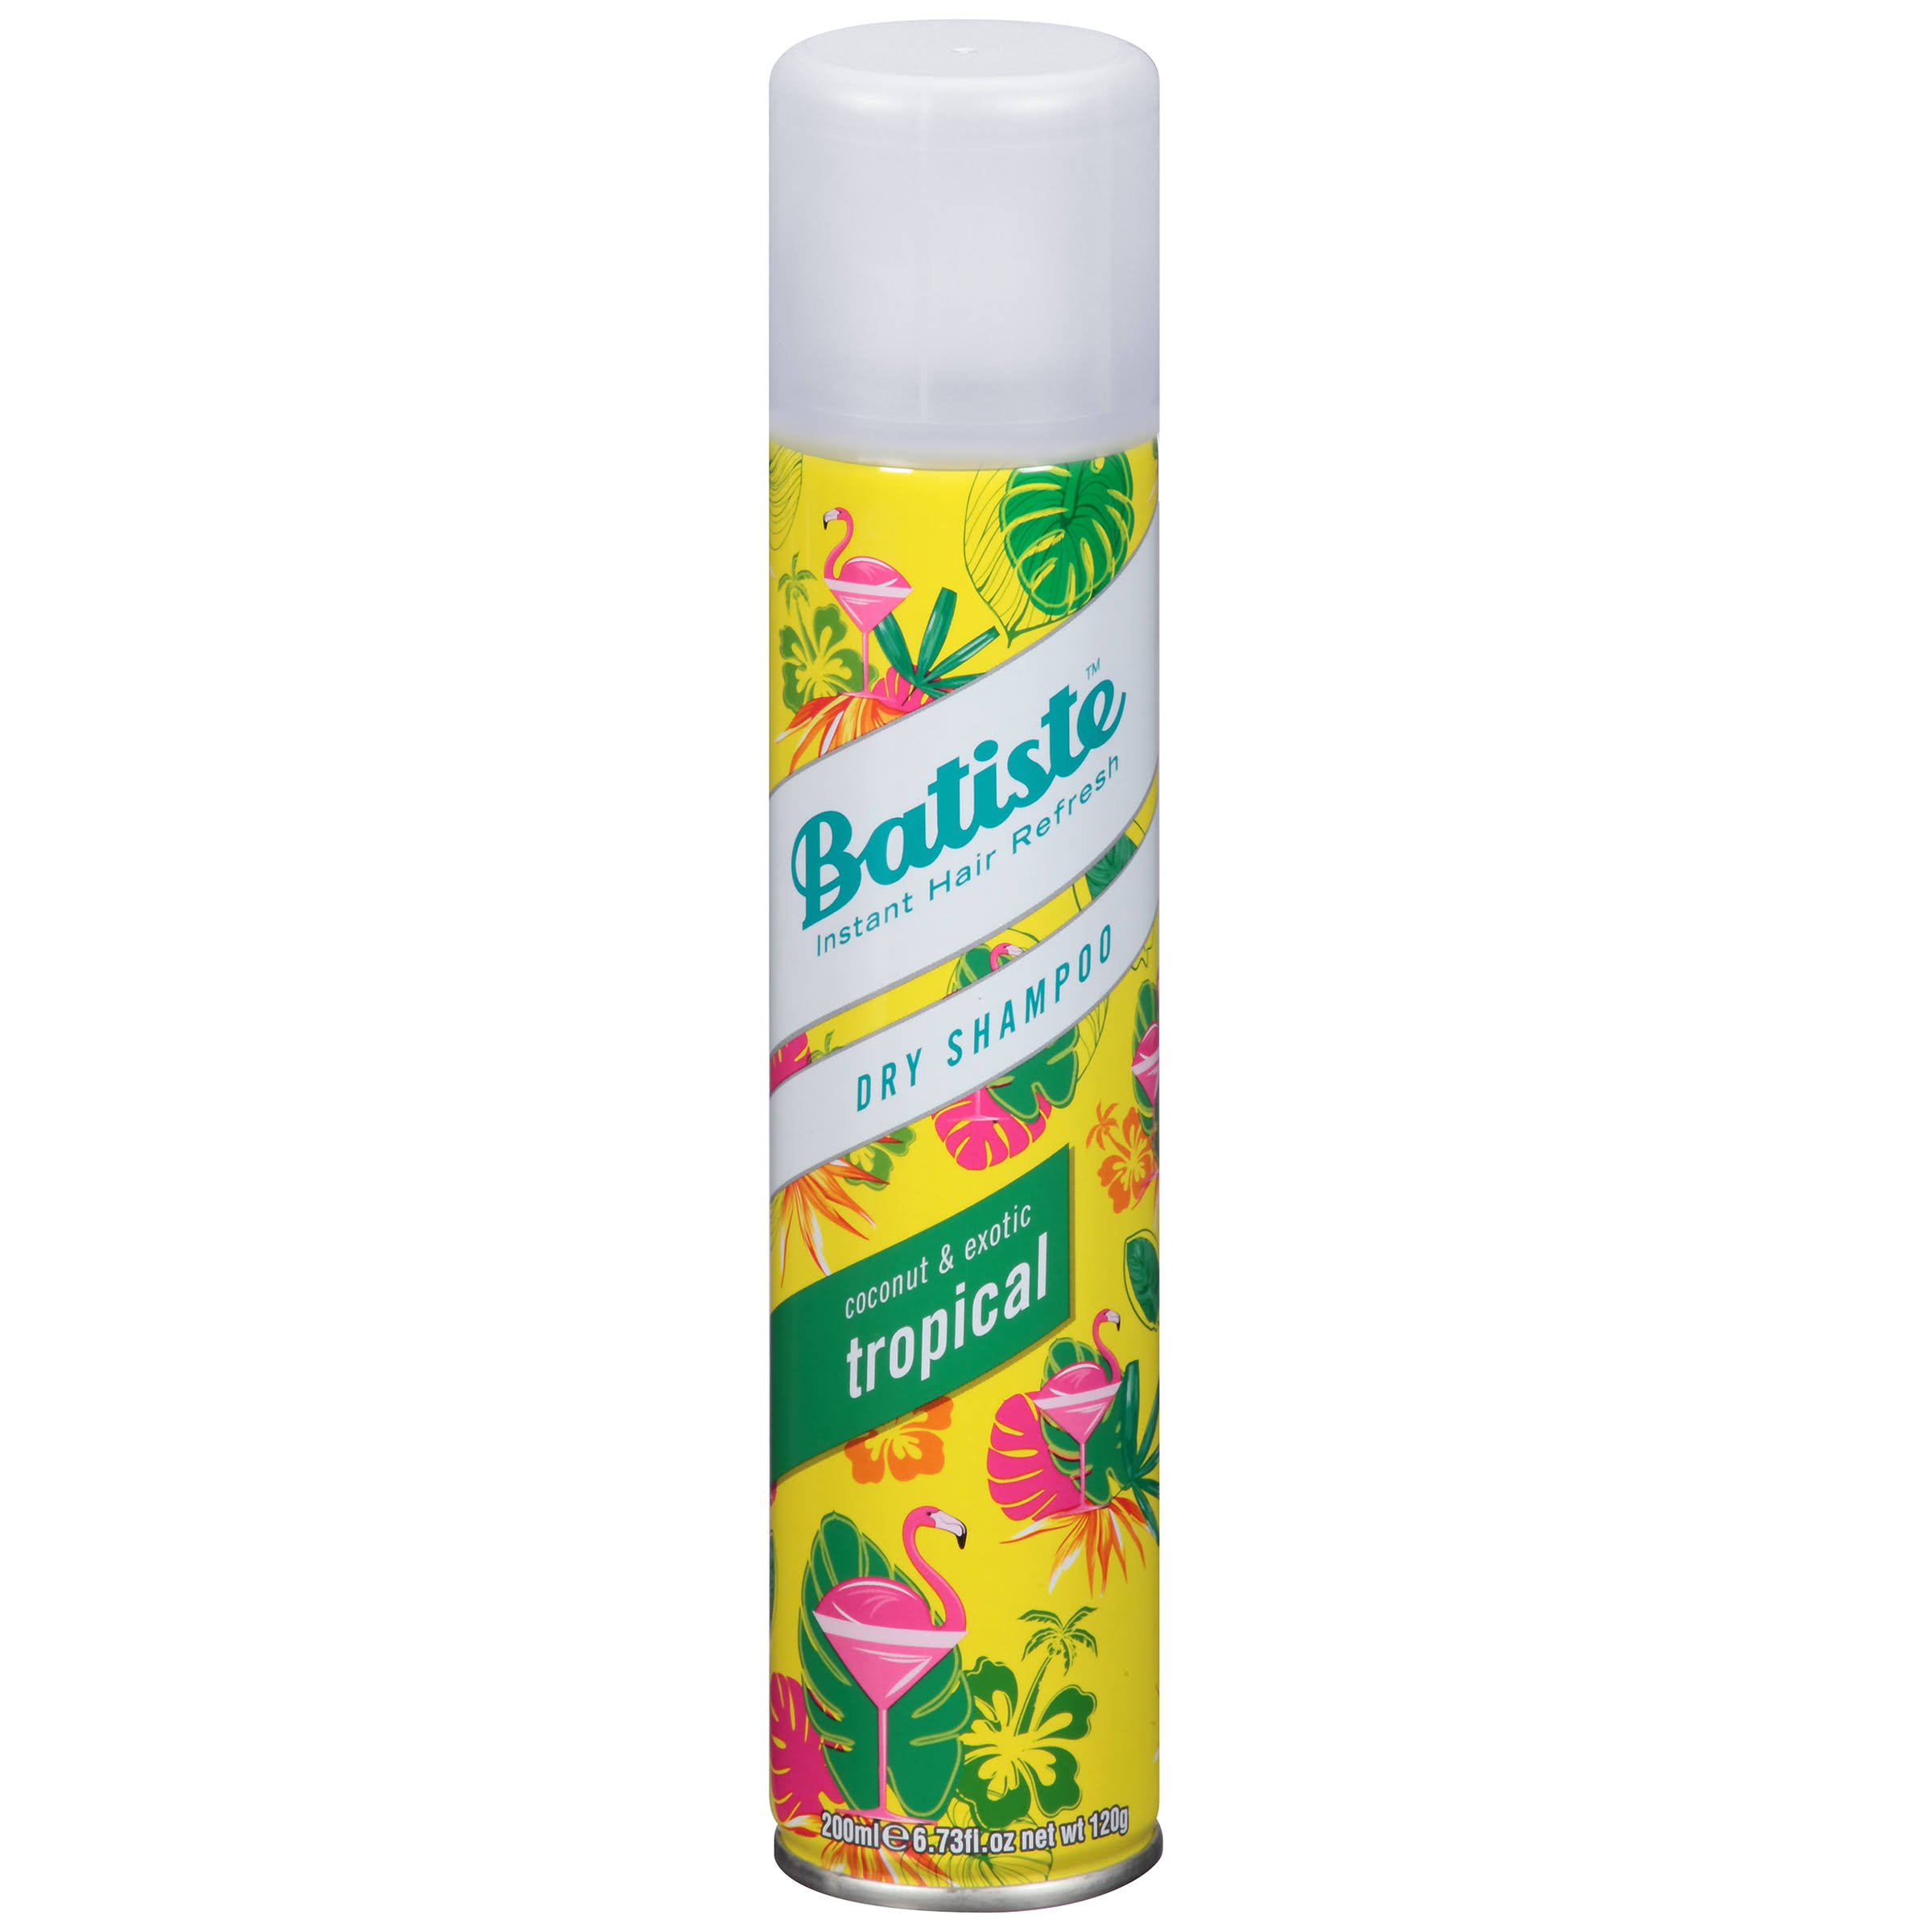 Batiste Dry Shampoo - Coconut and Exotic Tropical, 200ml